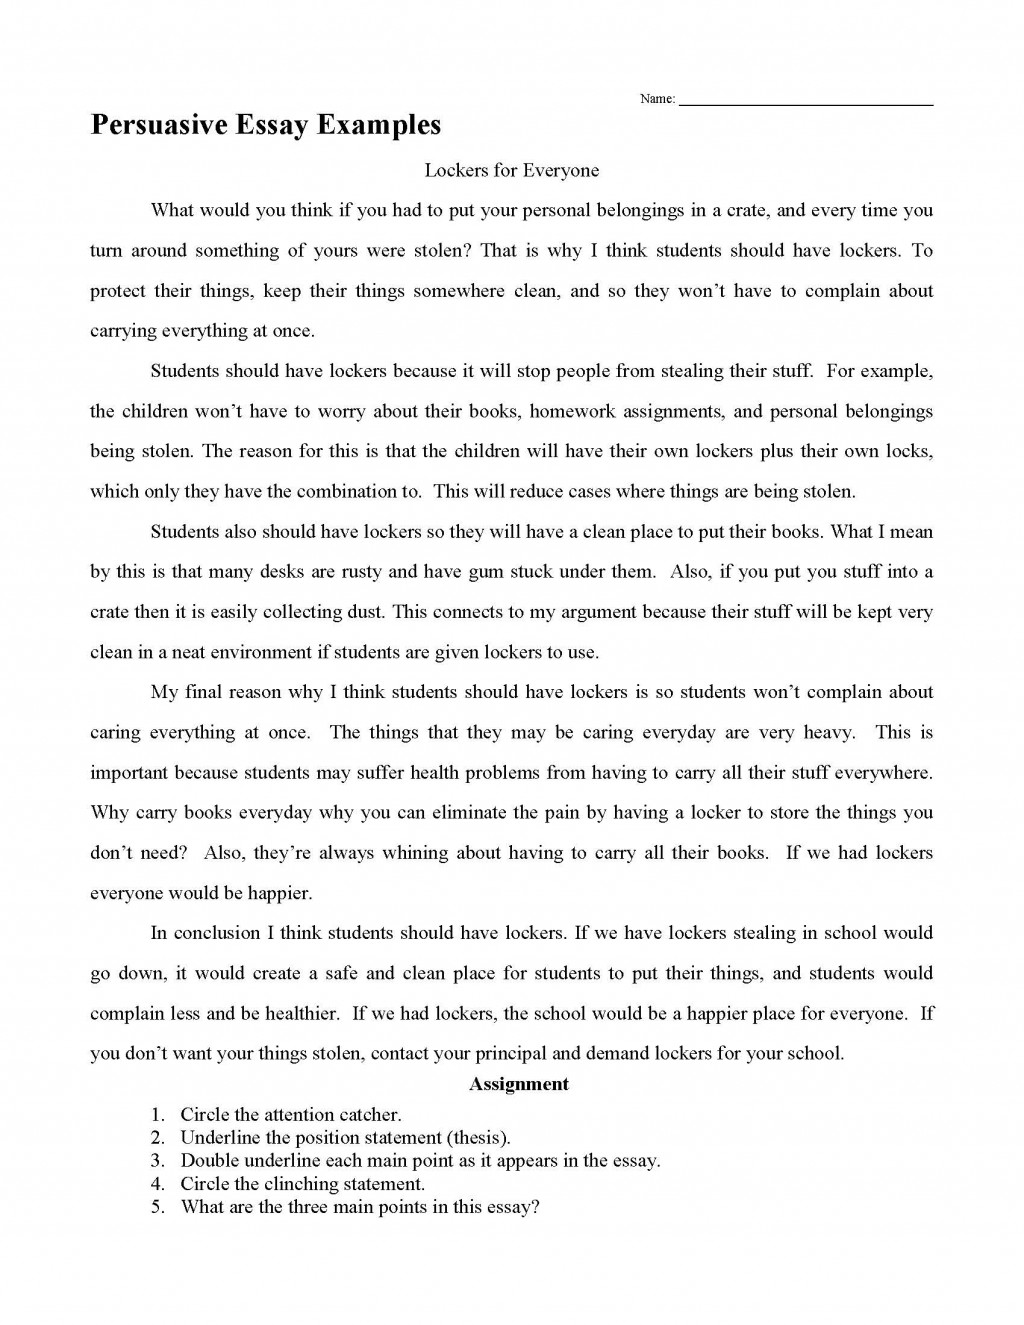 024 How To Start The Beginning Of Research Paper Persuasive Essay Examples Unique A Discussion Section Write Body Apa Intro Example Large